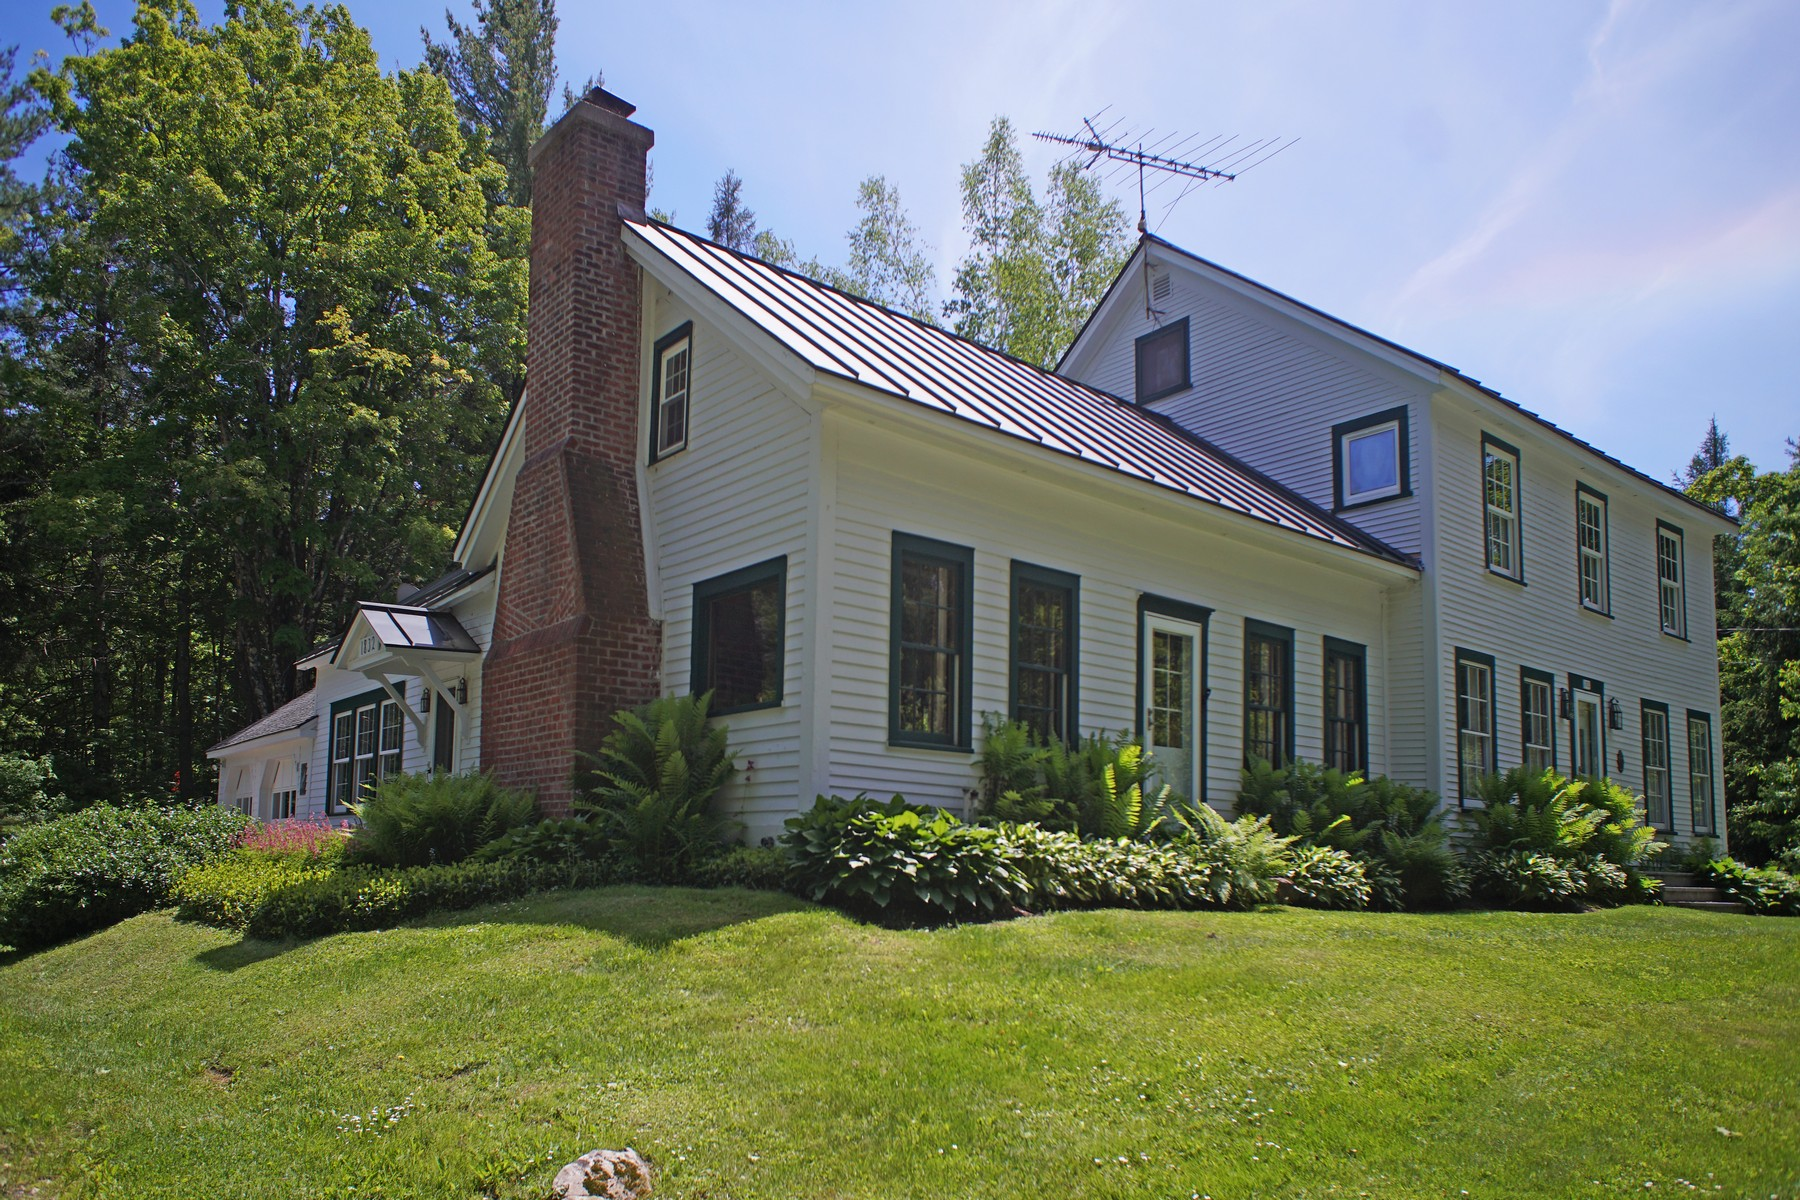 Single Family Homes for Sale at 119 Main St Street, Peru 119 Main St St Peru, Vermont 05152 United States